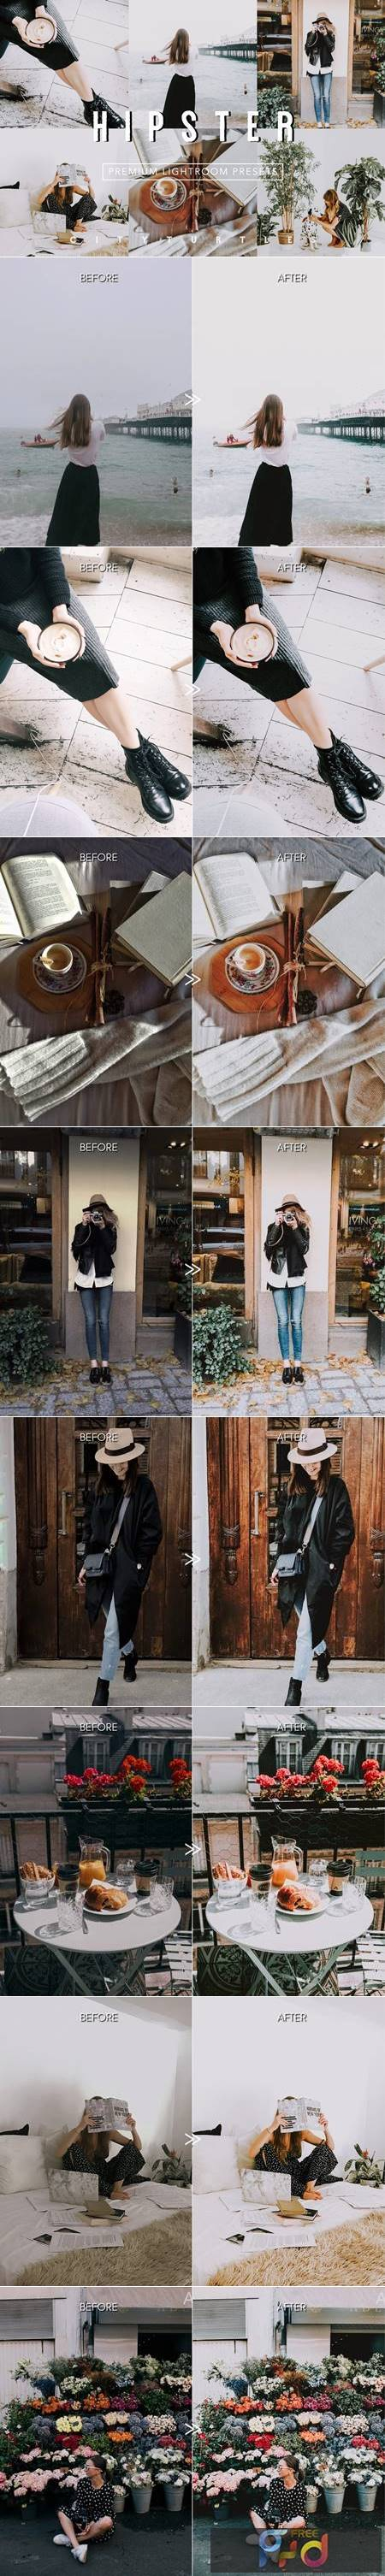 Aesthetic HIPSTER Lightroom Presets 4806642 1